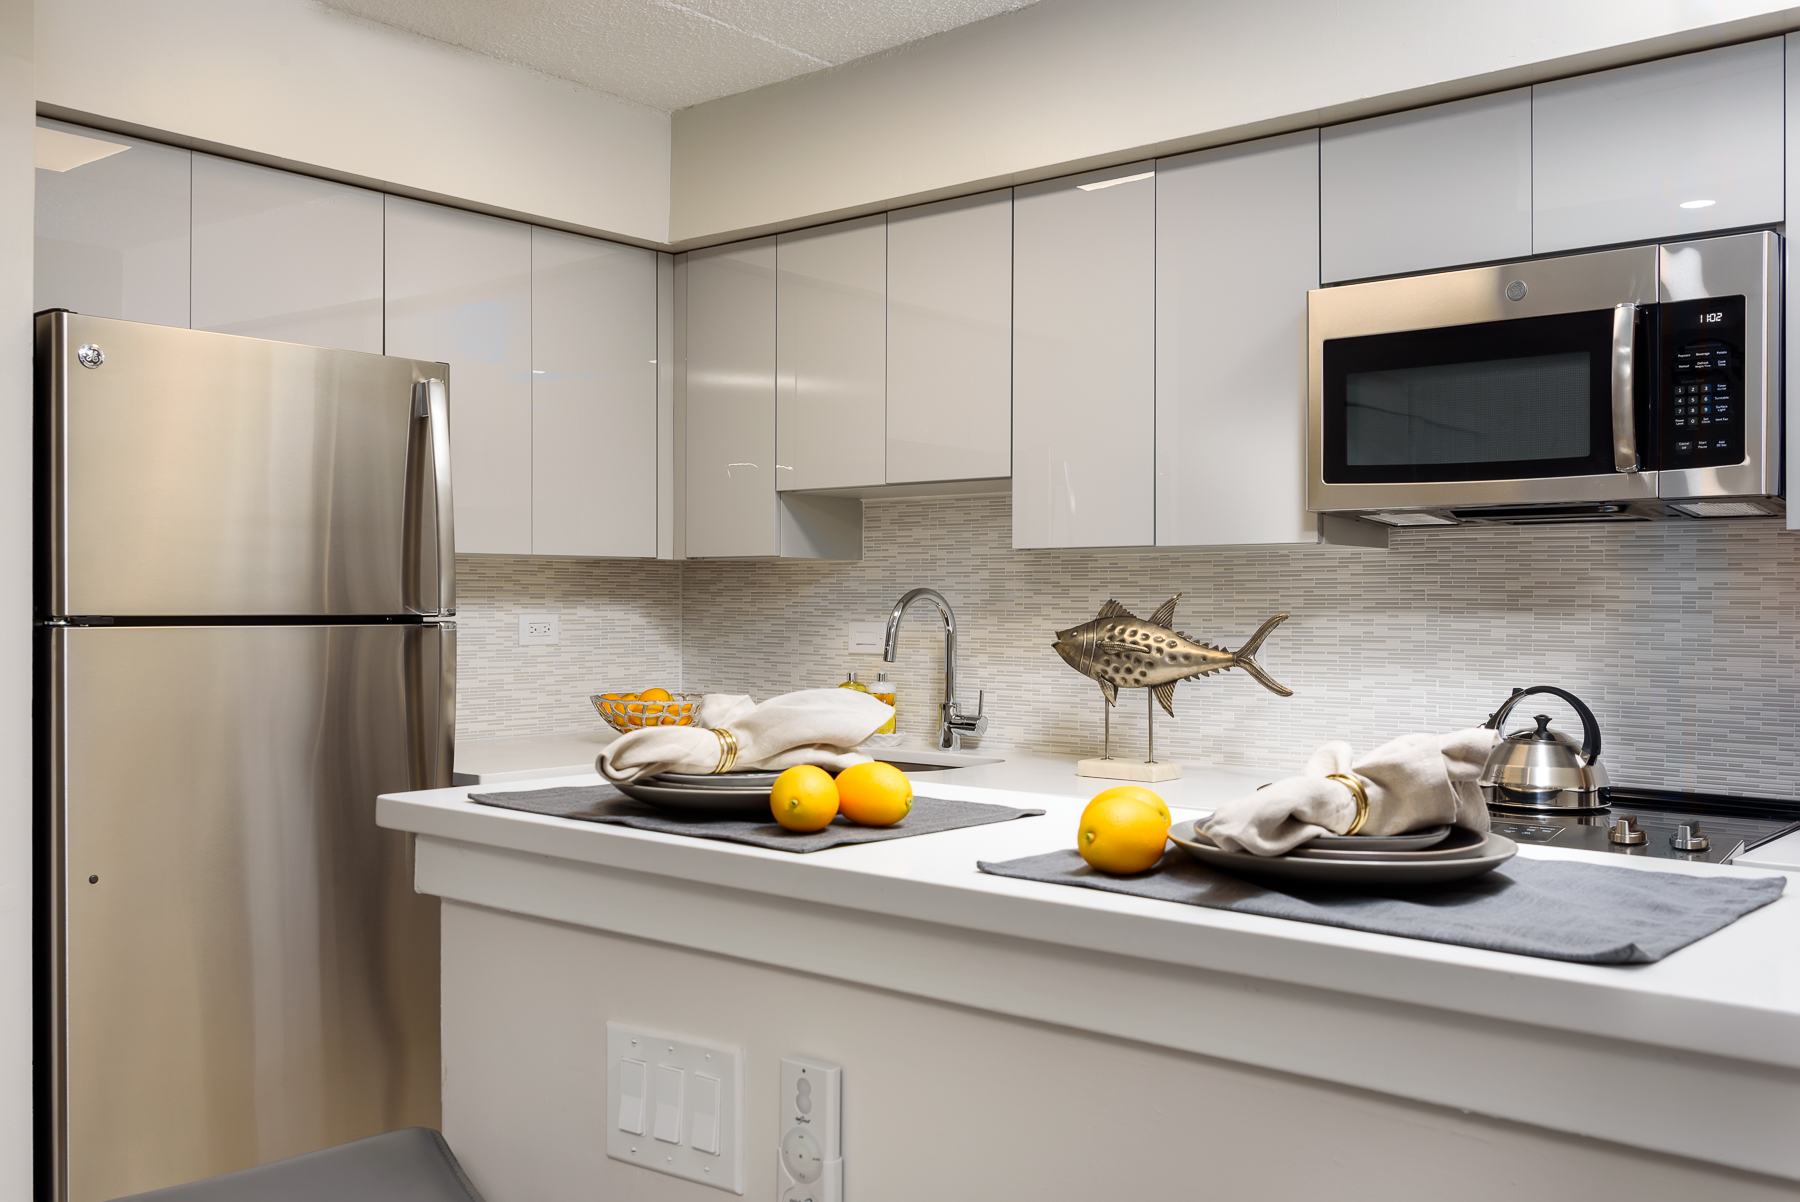 kitchen in an apartment for rent in King of Prussia at Valley Forge Towers